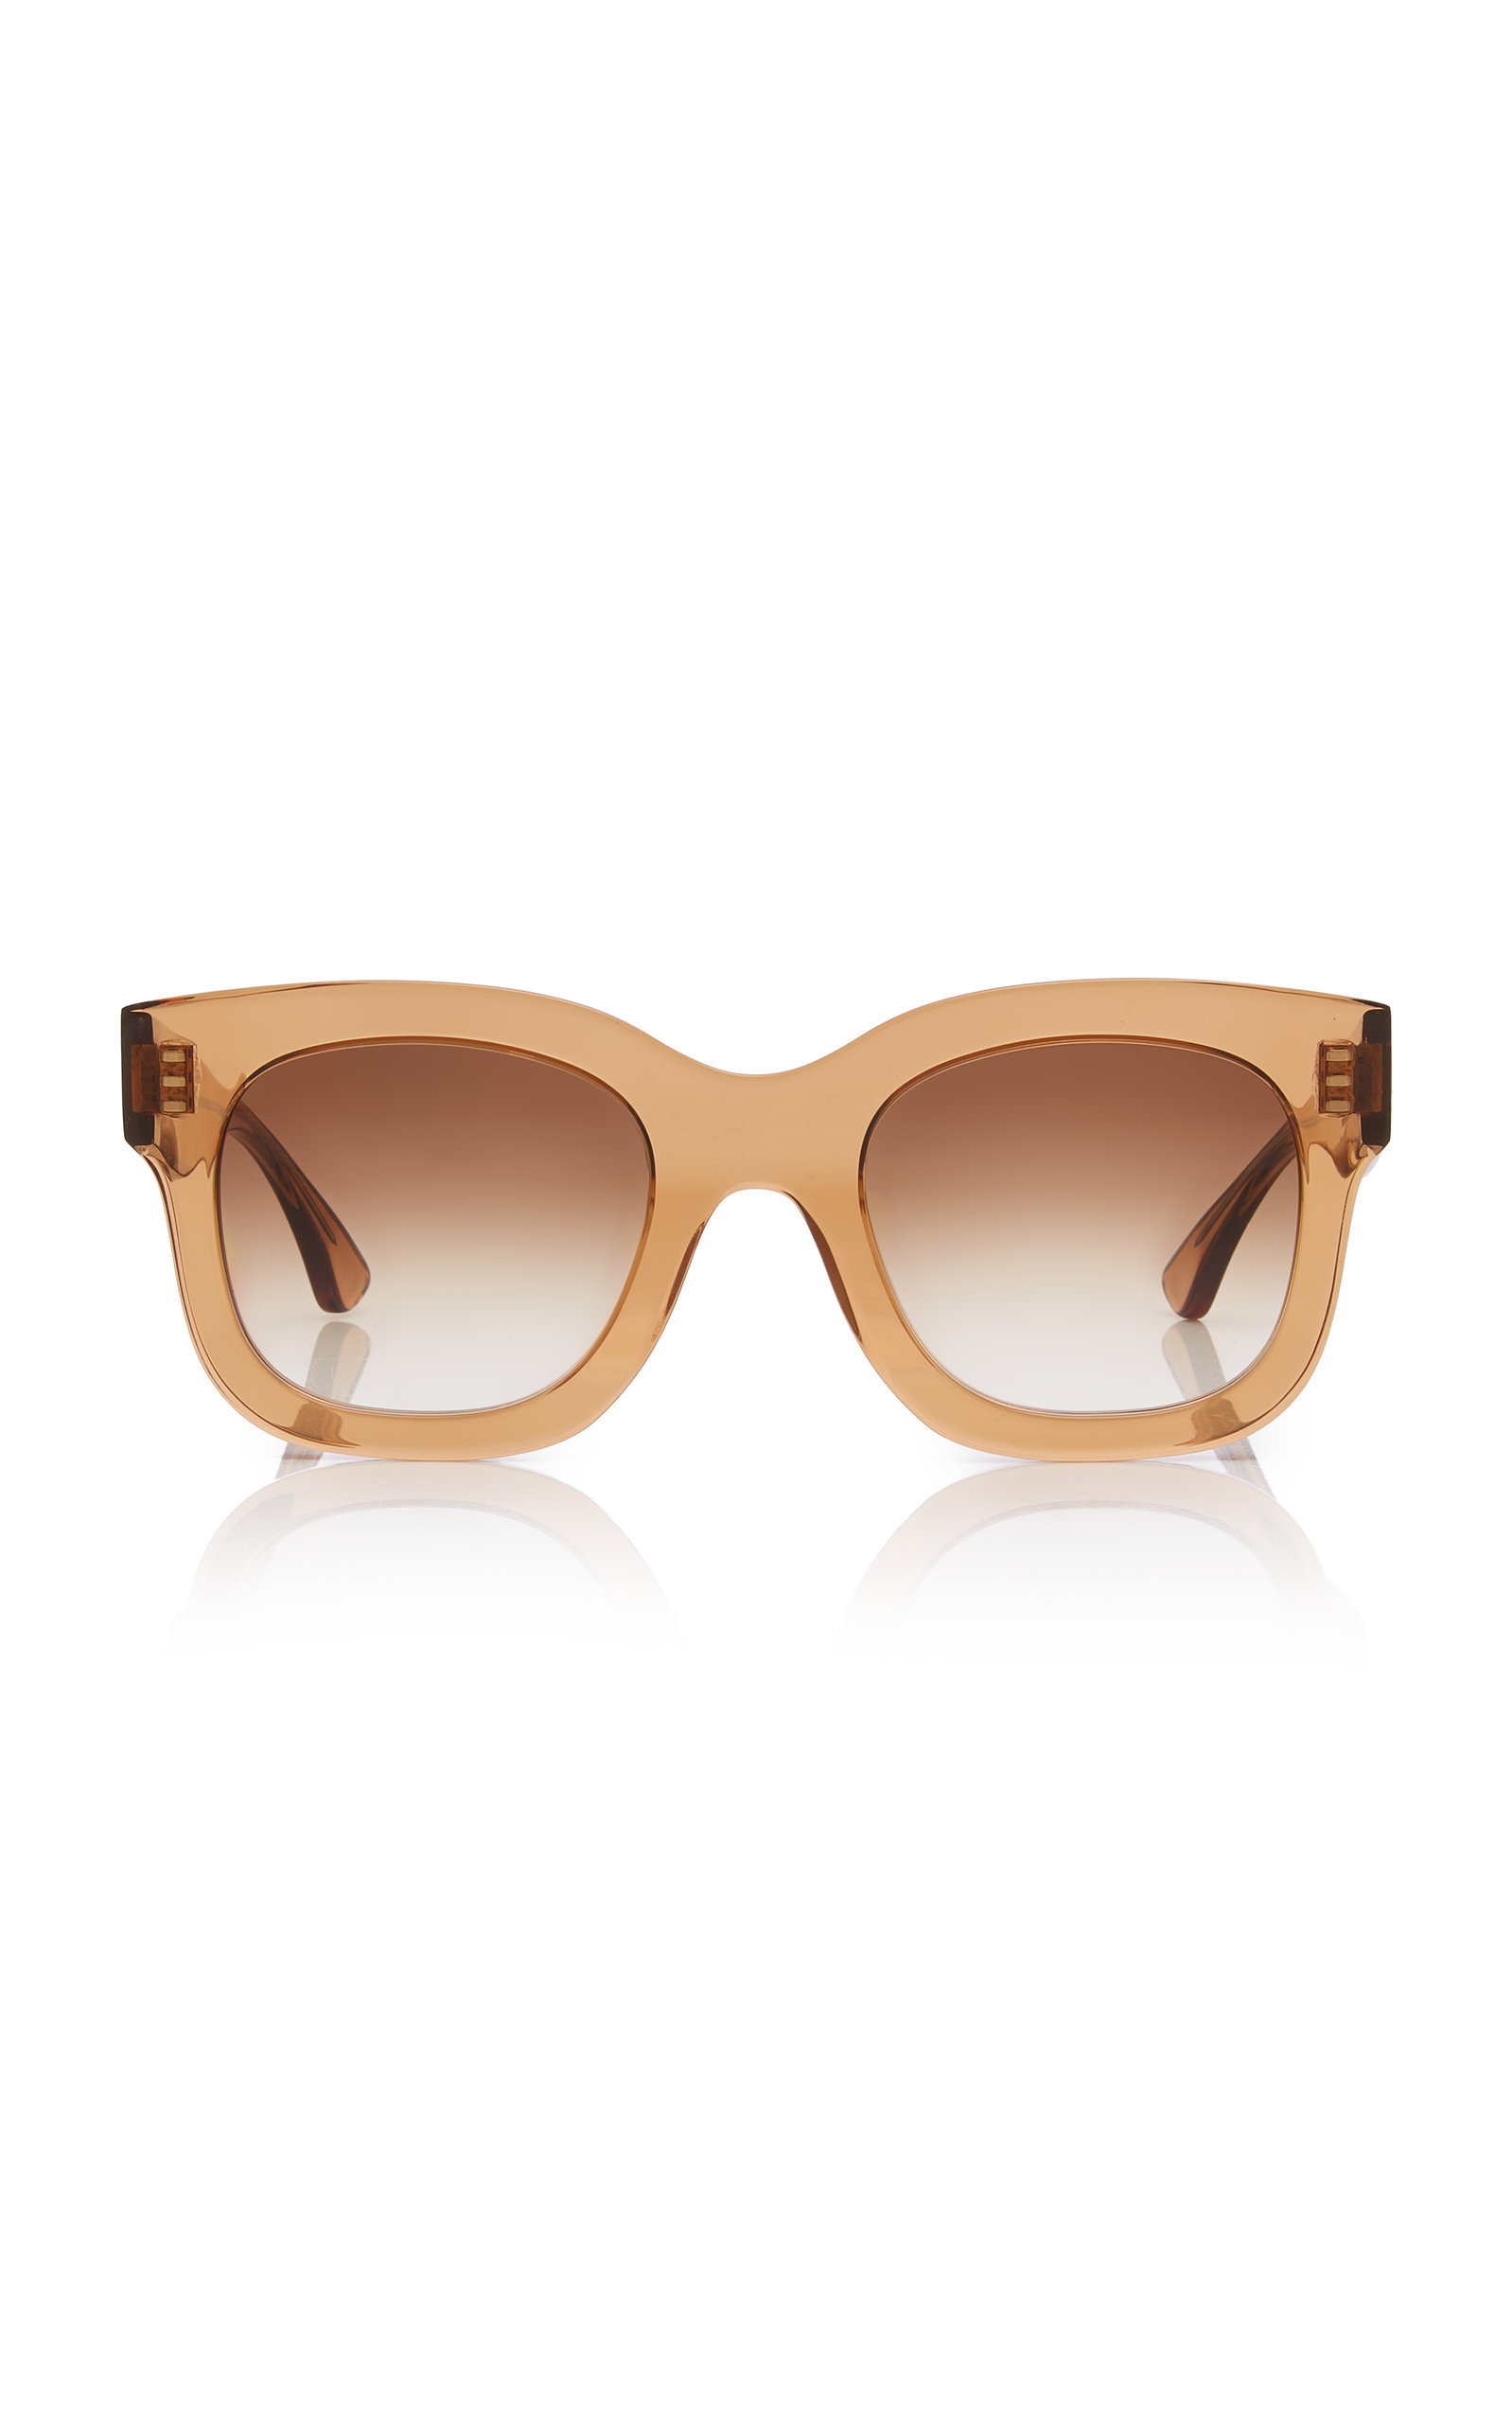 Thierry Lasry